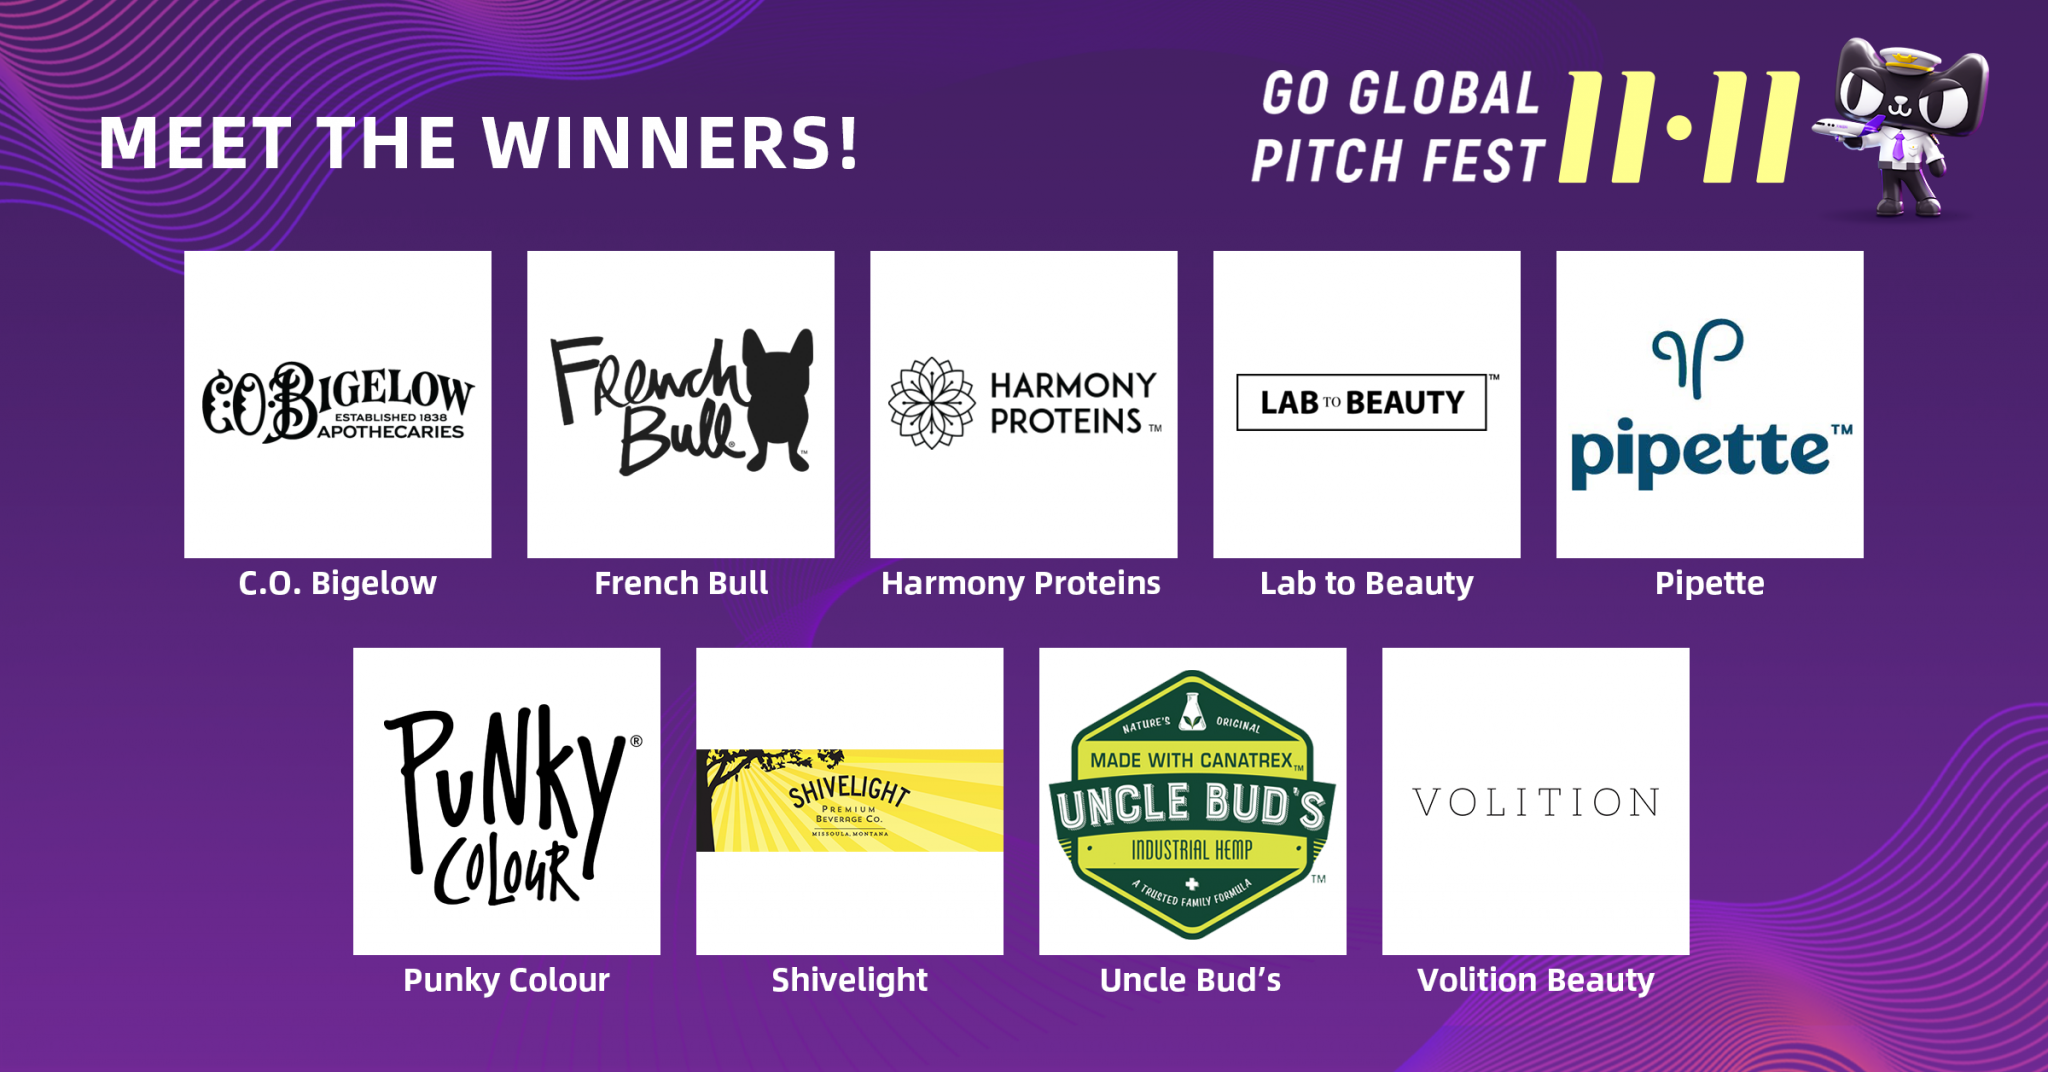 Go Global 11.11 Pitch Fest Winners - featured images